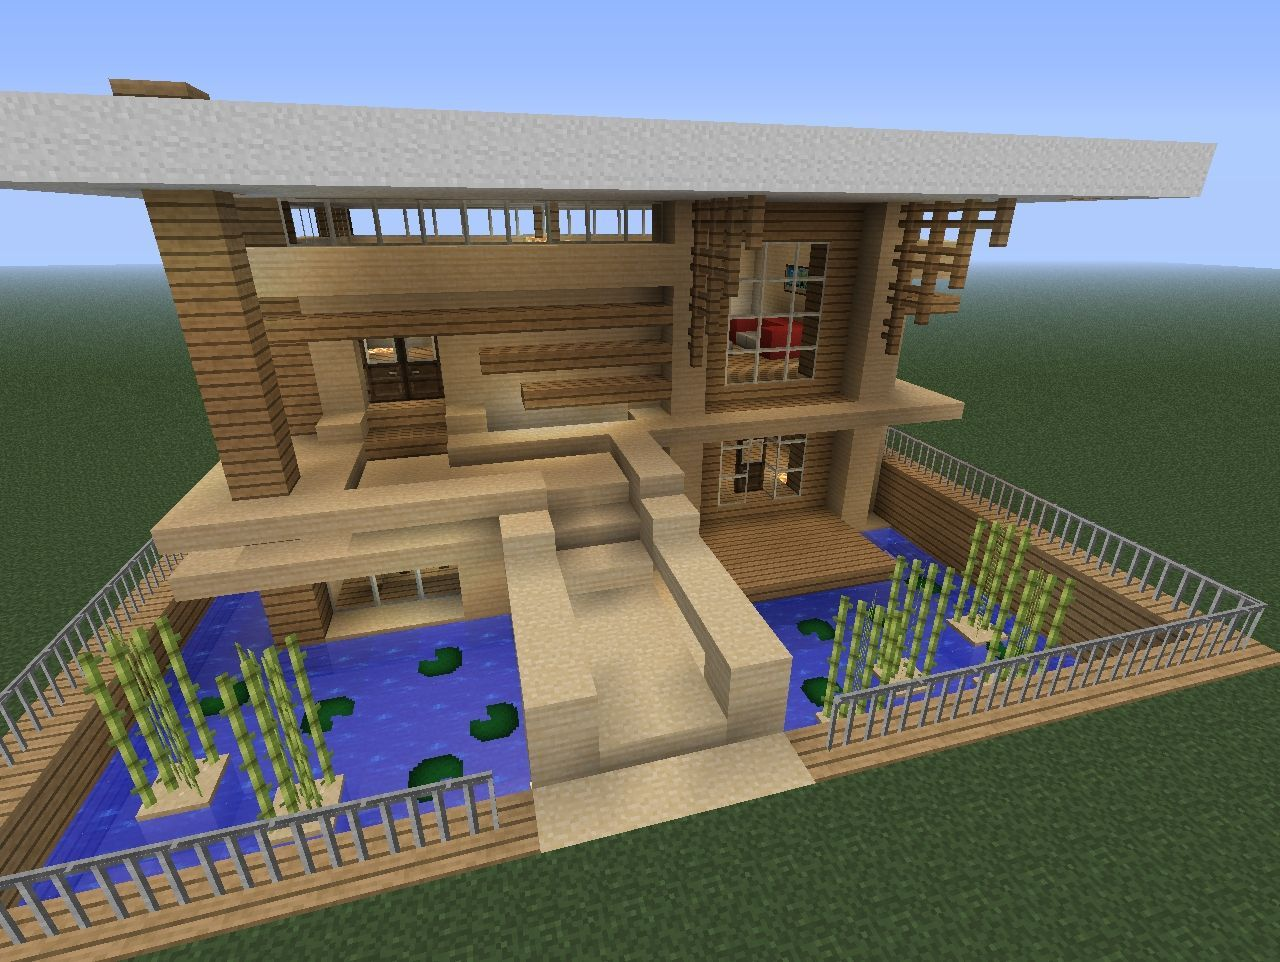 Best 25 minecraft houses ideas on pinterest minecraft minecraft designs and minecraft buildings - Minecraft home decor photos ...